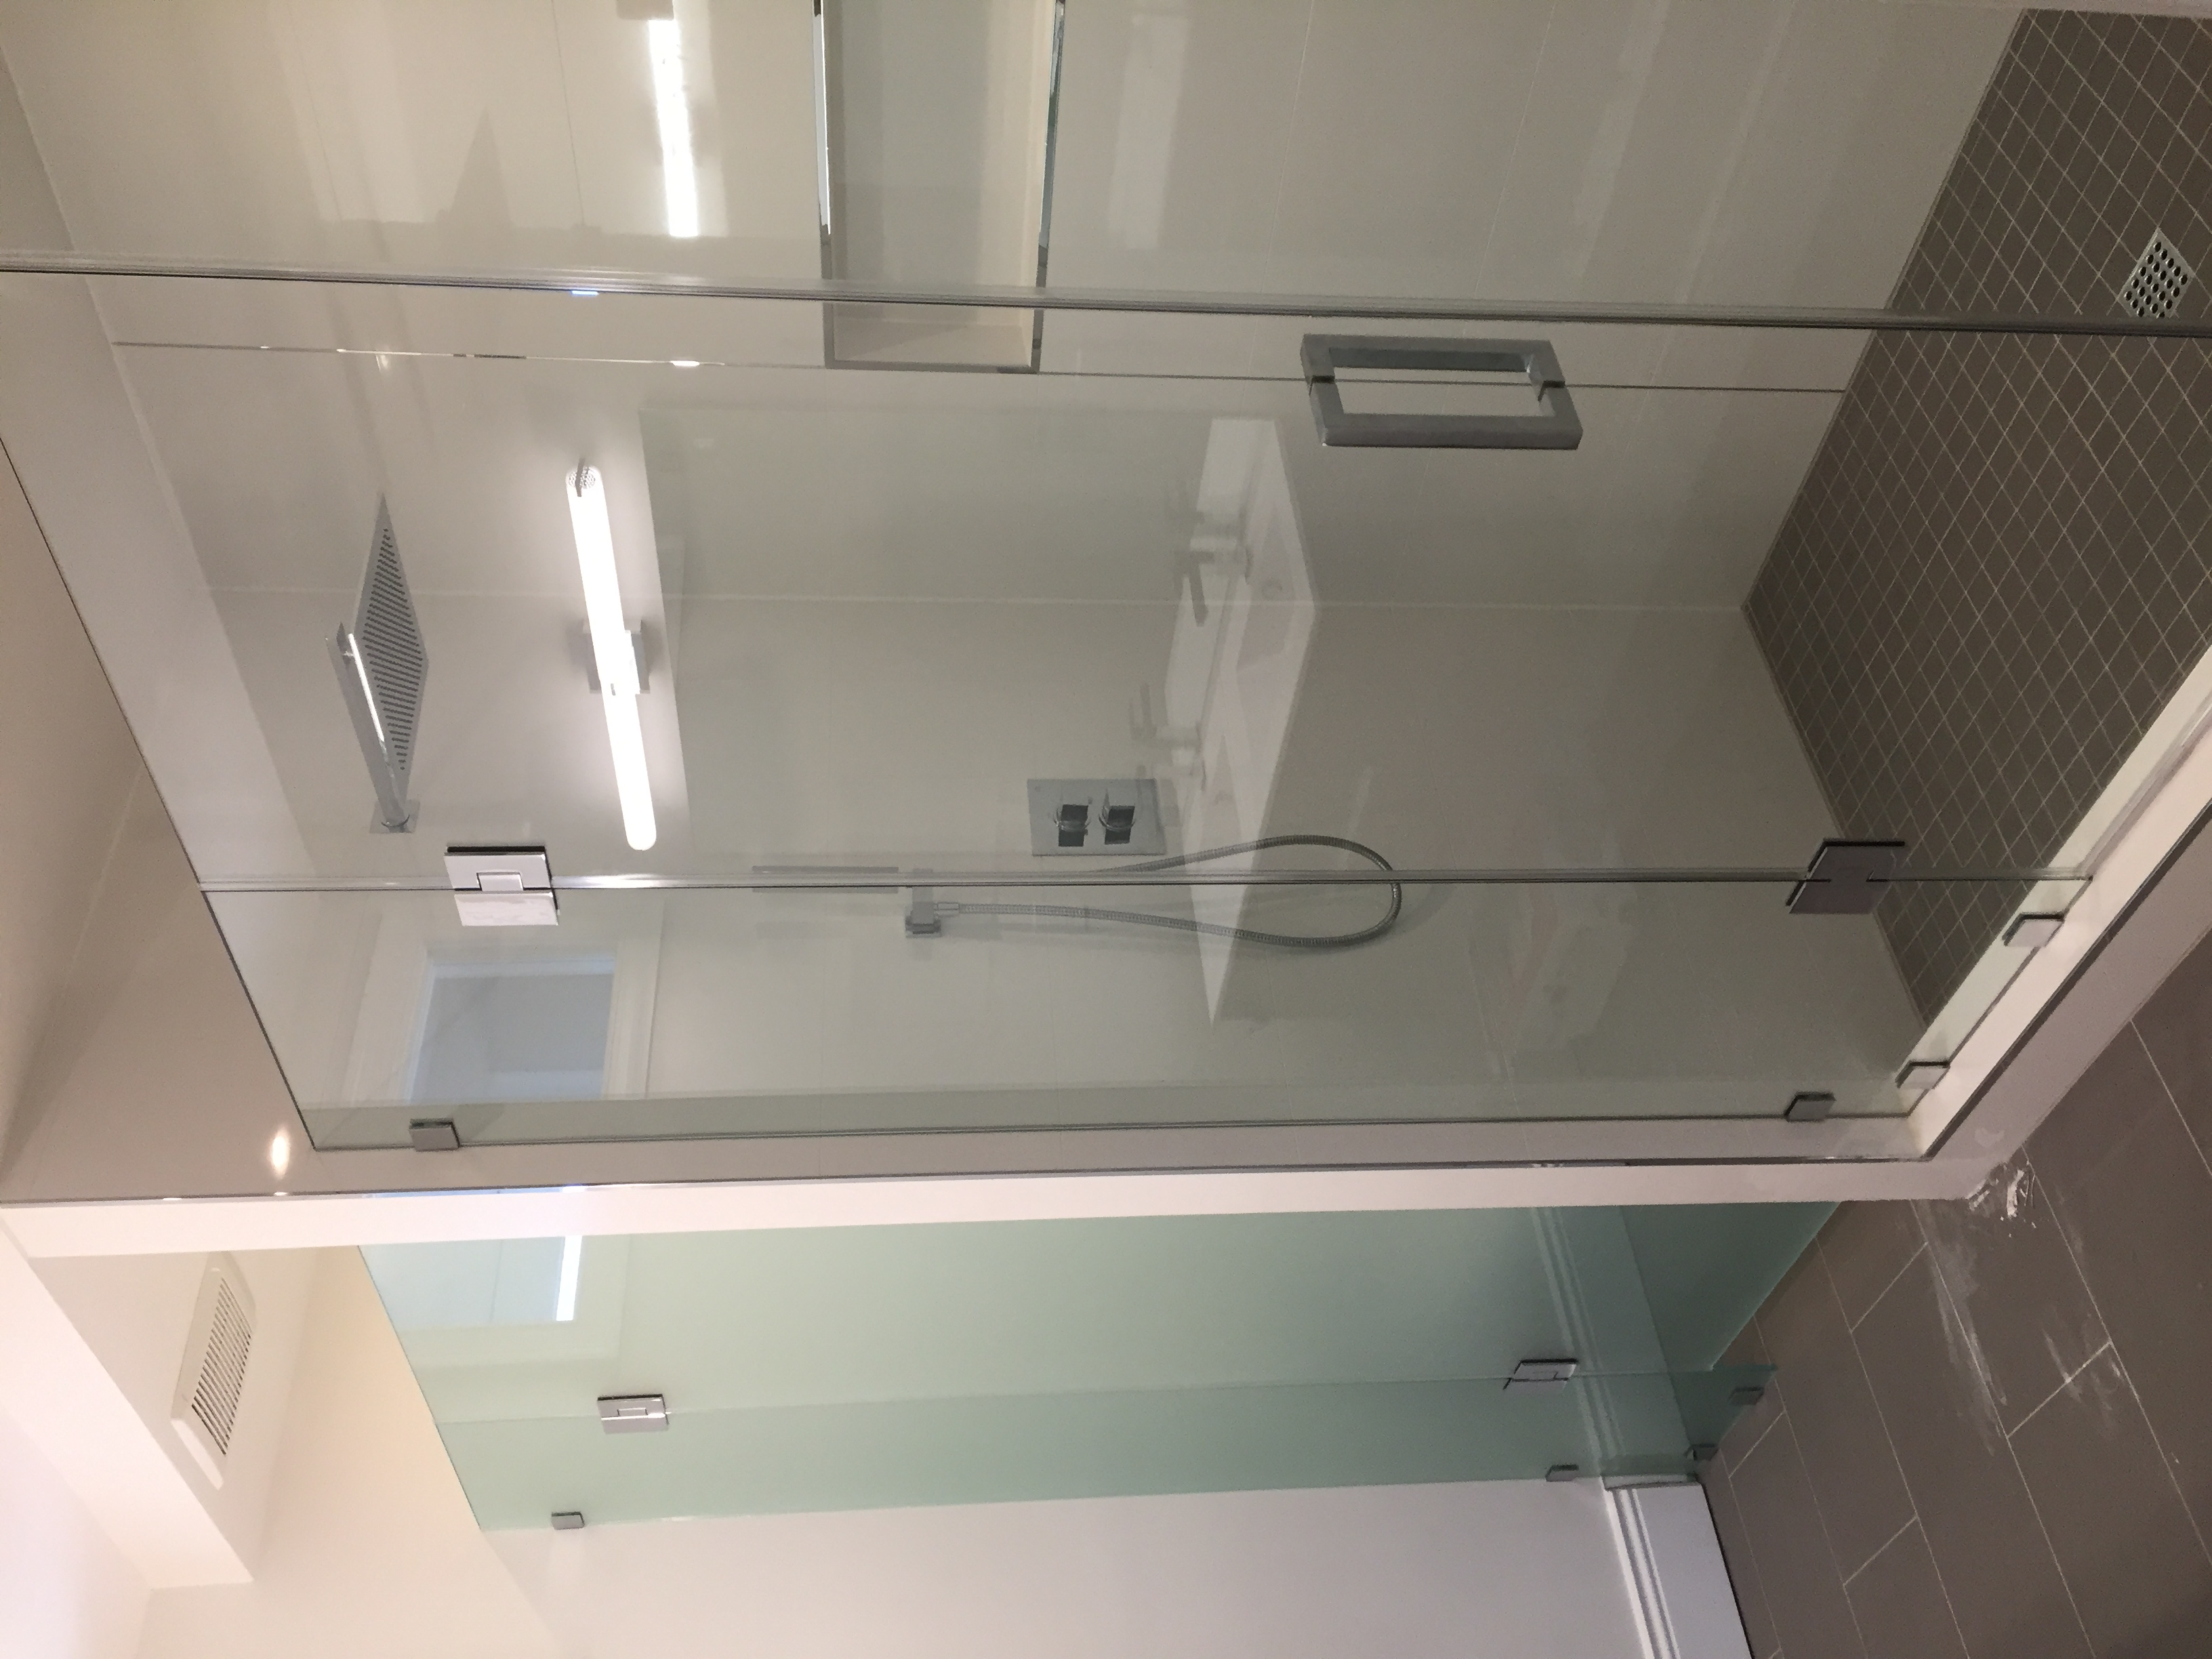 A Frameless Door an panel shower in Dc MD VA DMV US